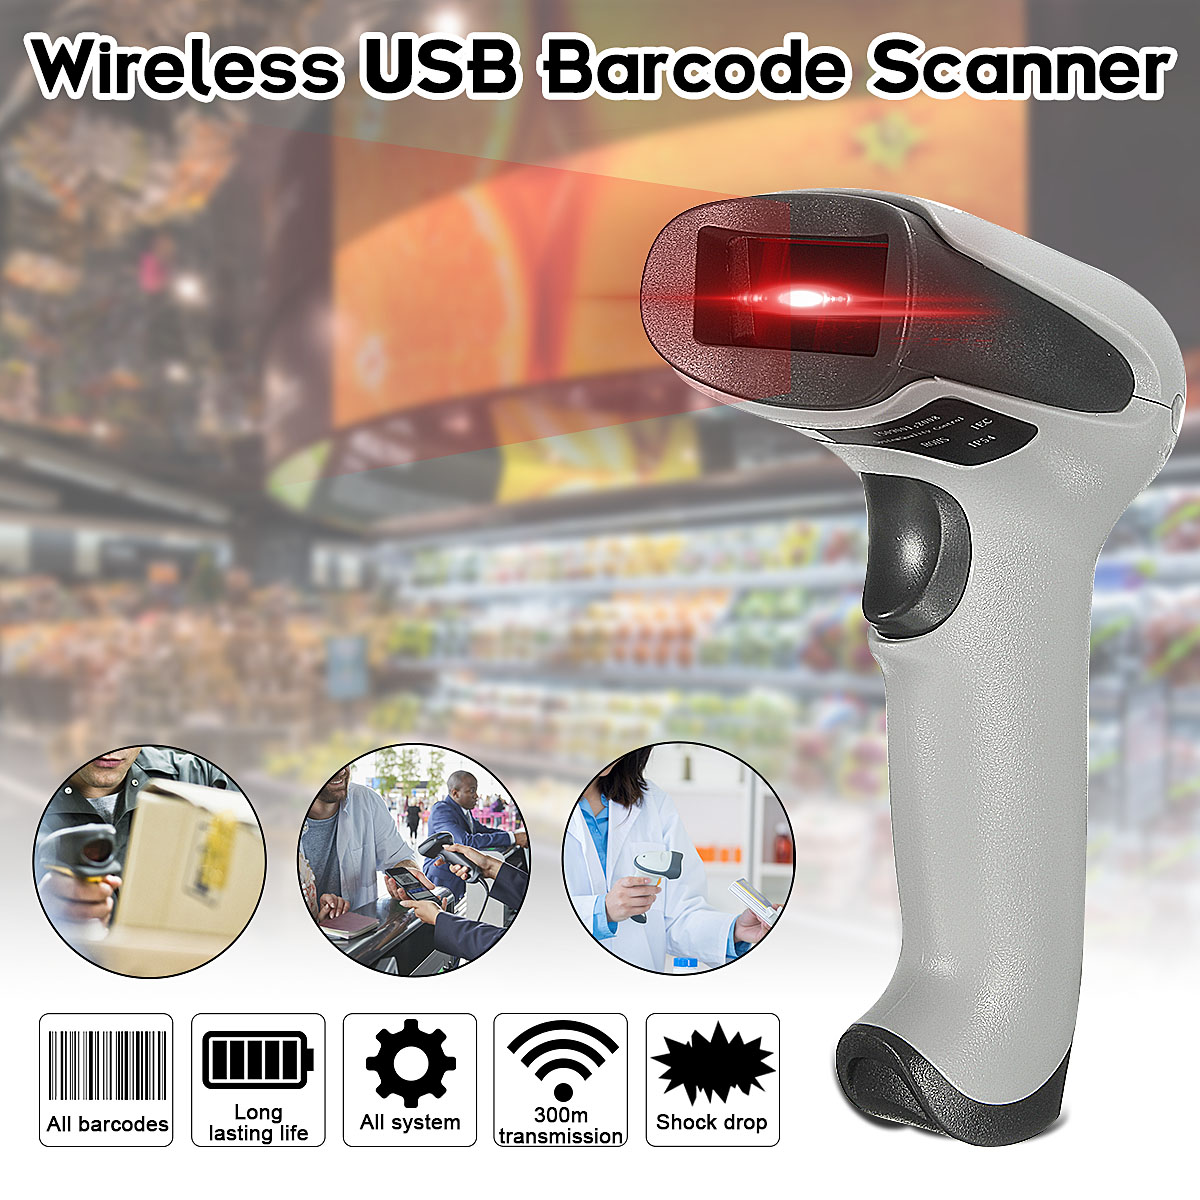 Portable Wireless Barcode Scanner Bar Code Reader 2.4G 10m Laser Barcode Scanner Wireless/Wired for Inventory POS Supermarket inventory accounting